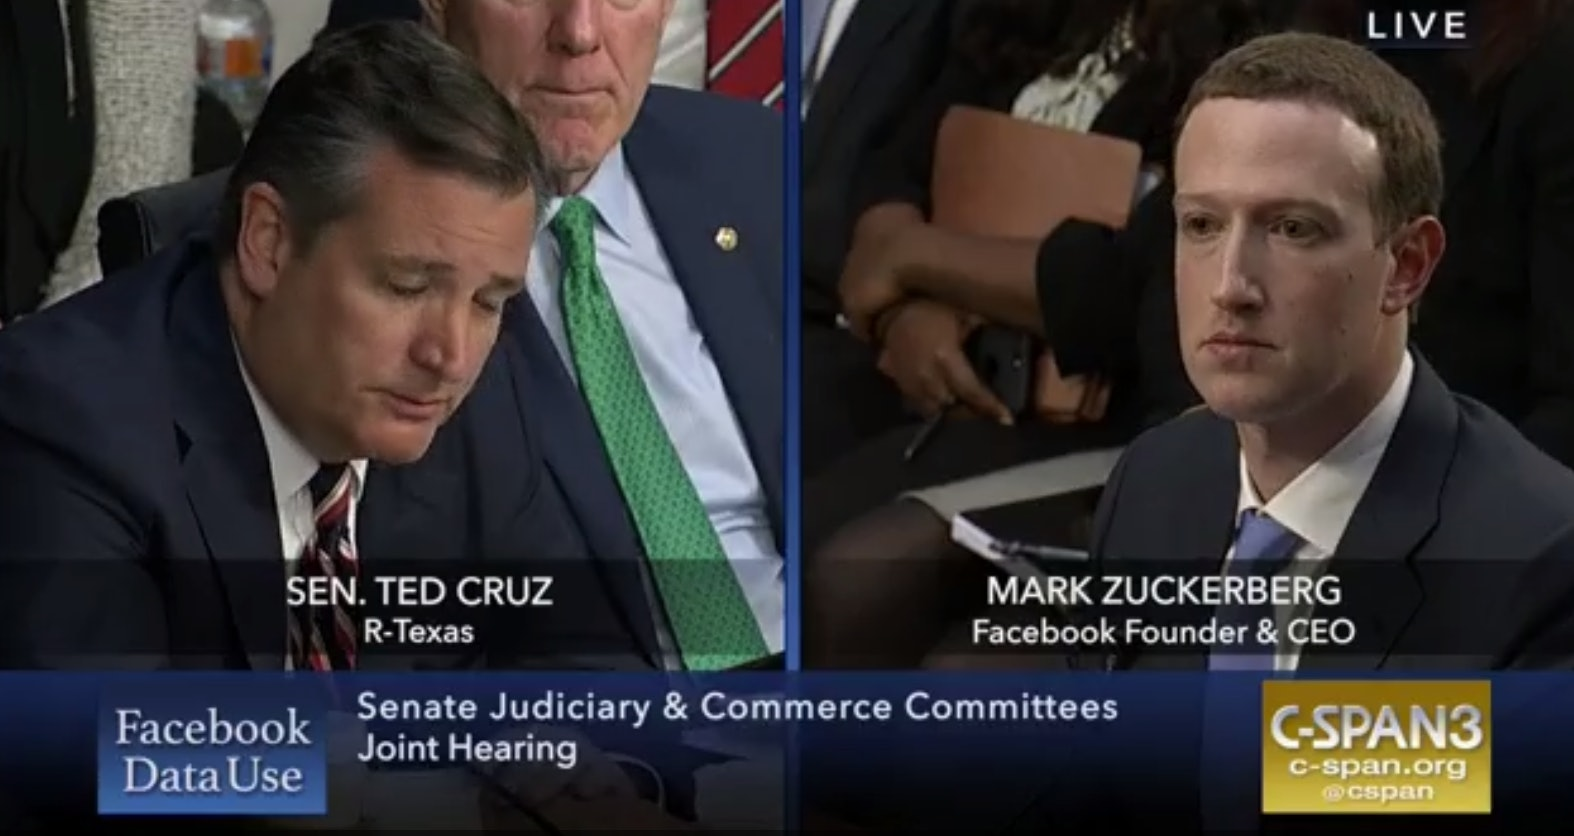 Ted Cruz didn't ask Zuckerberg about Cambridge Analytica, perhaps because his campaign gave it $5.8 million.